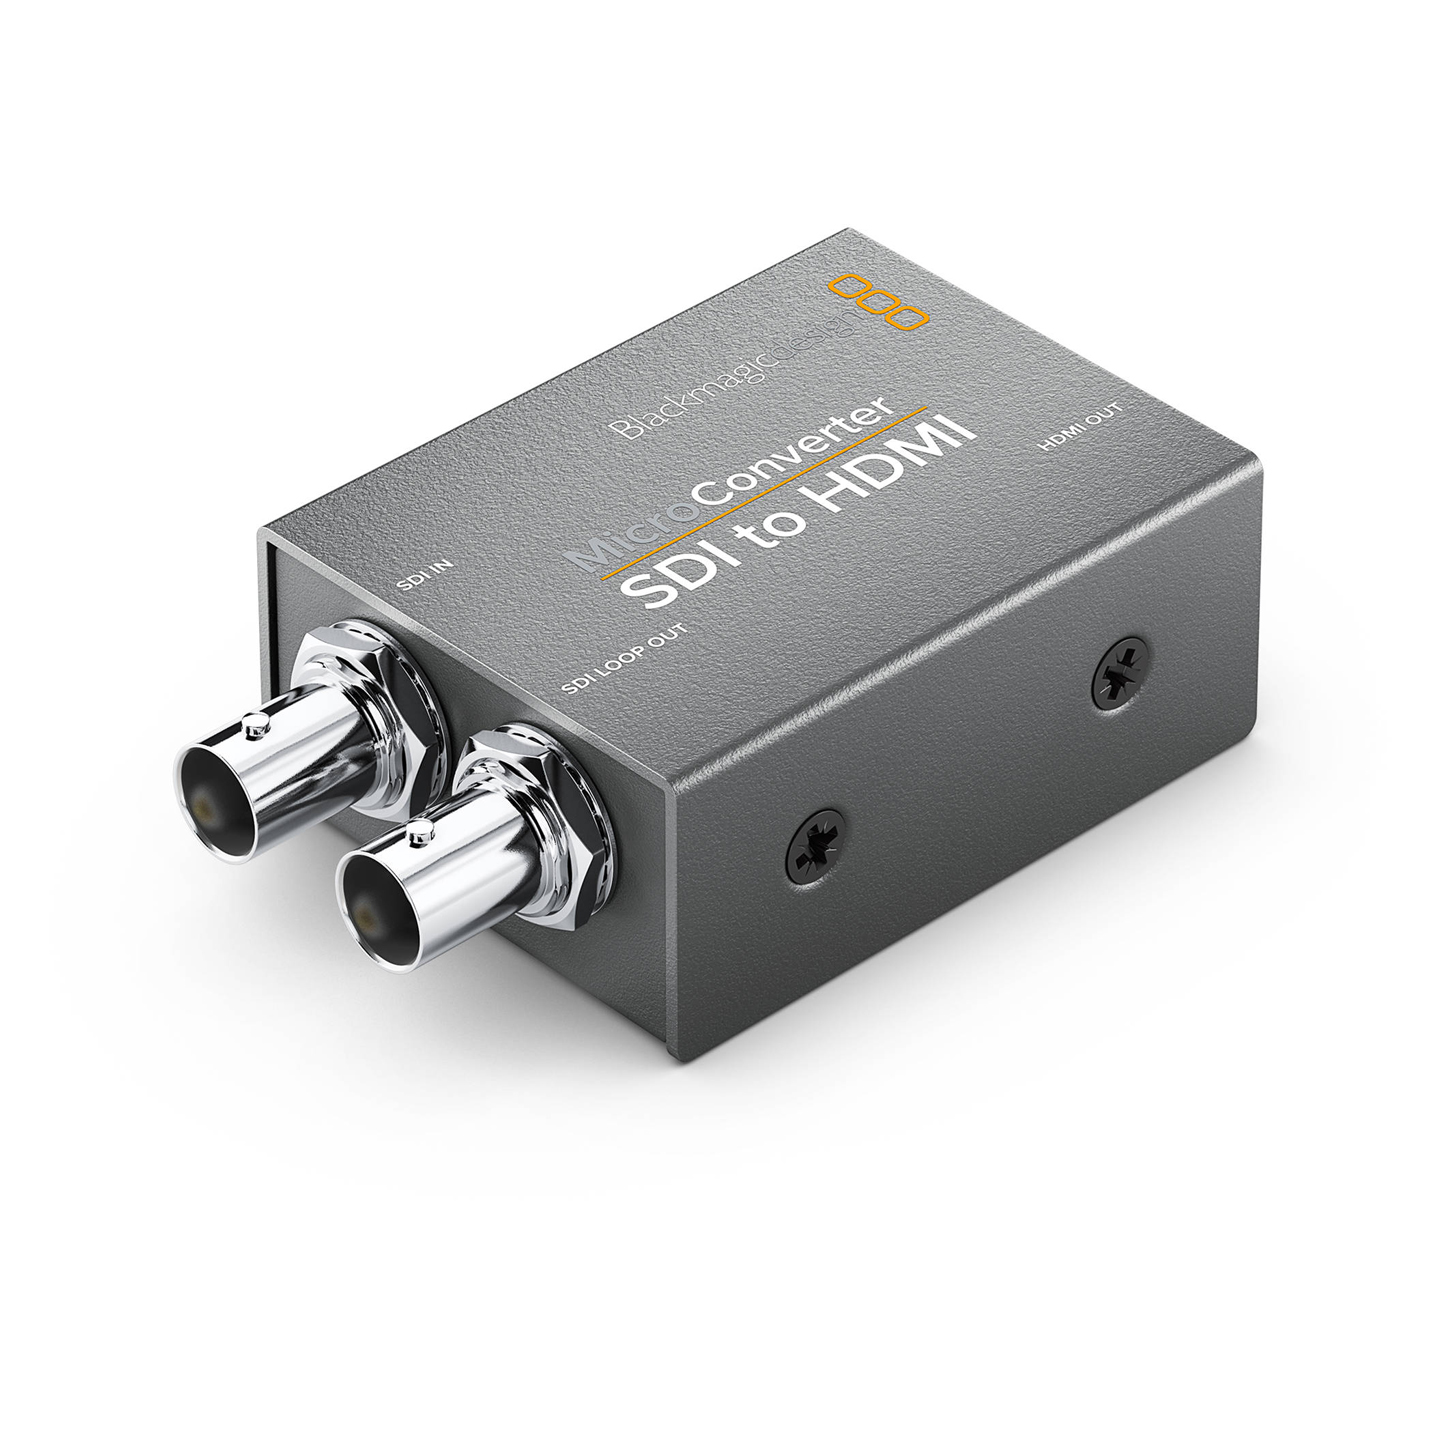 Blackmagic Design Micro Converter SDI to HDMI - Main